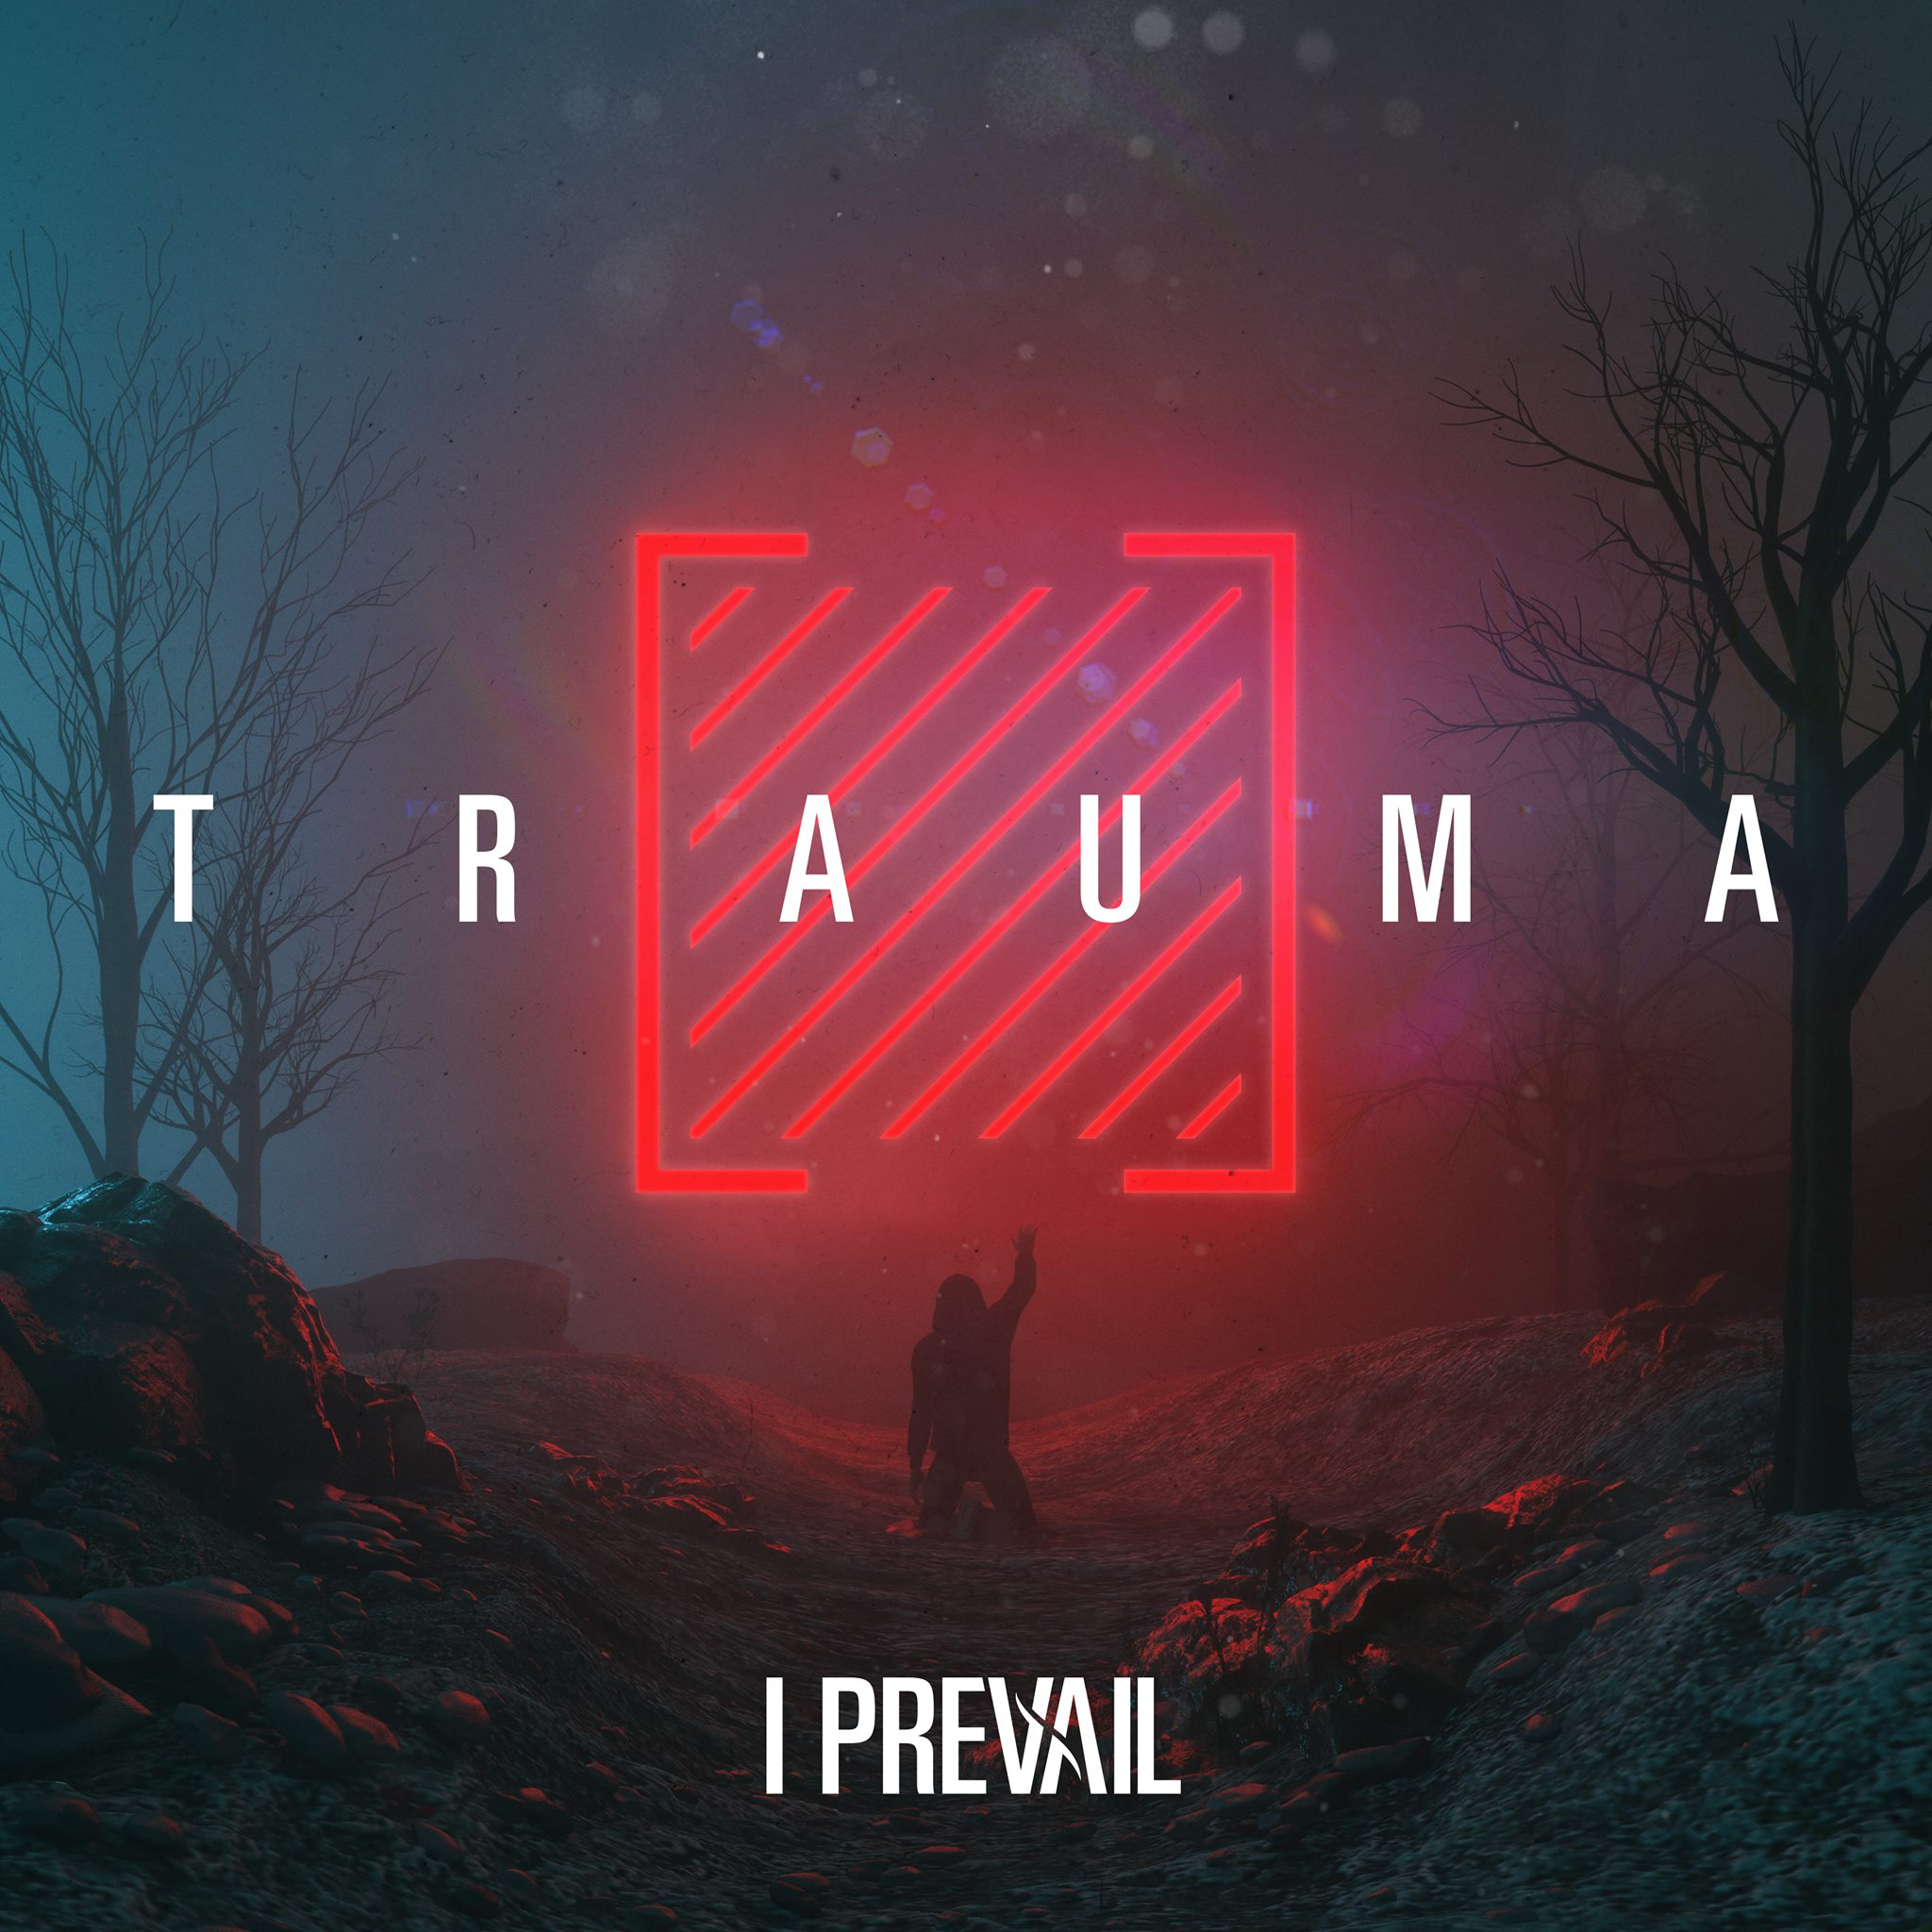 REVIEW: I Prevail revives rock music with 'Trauma'